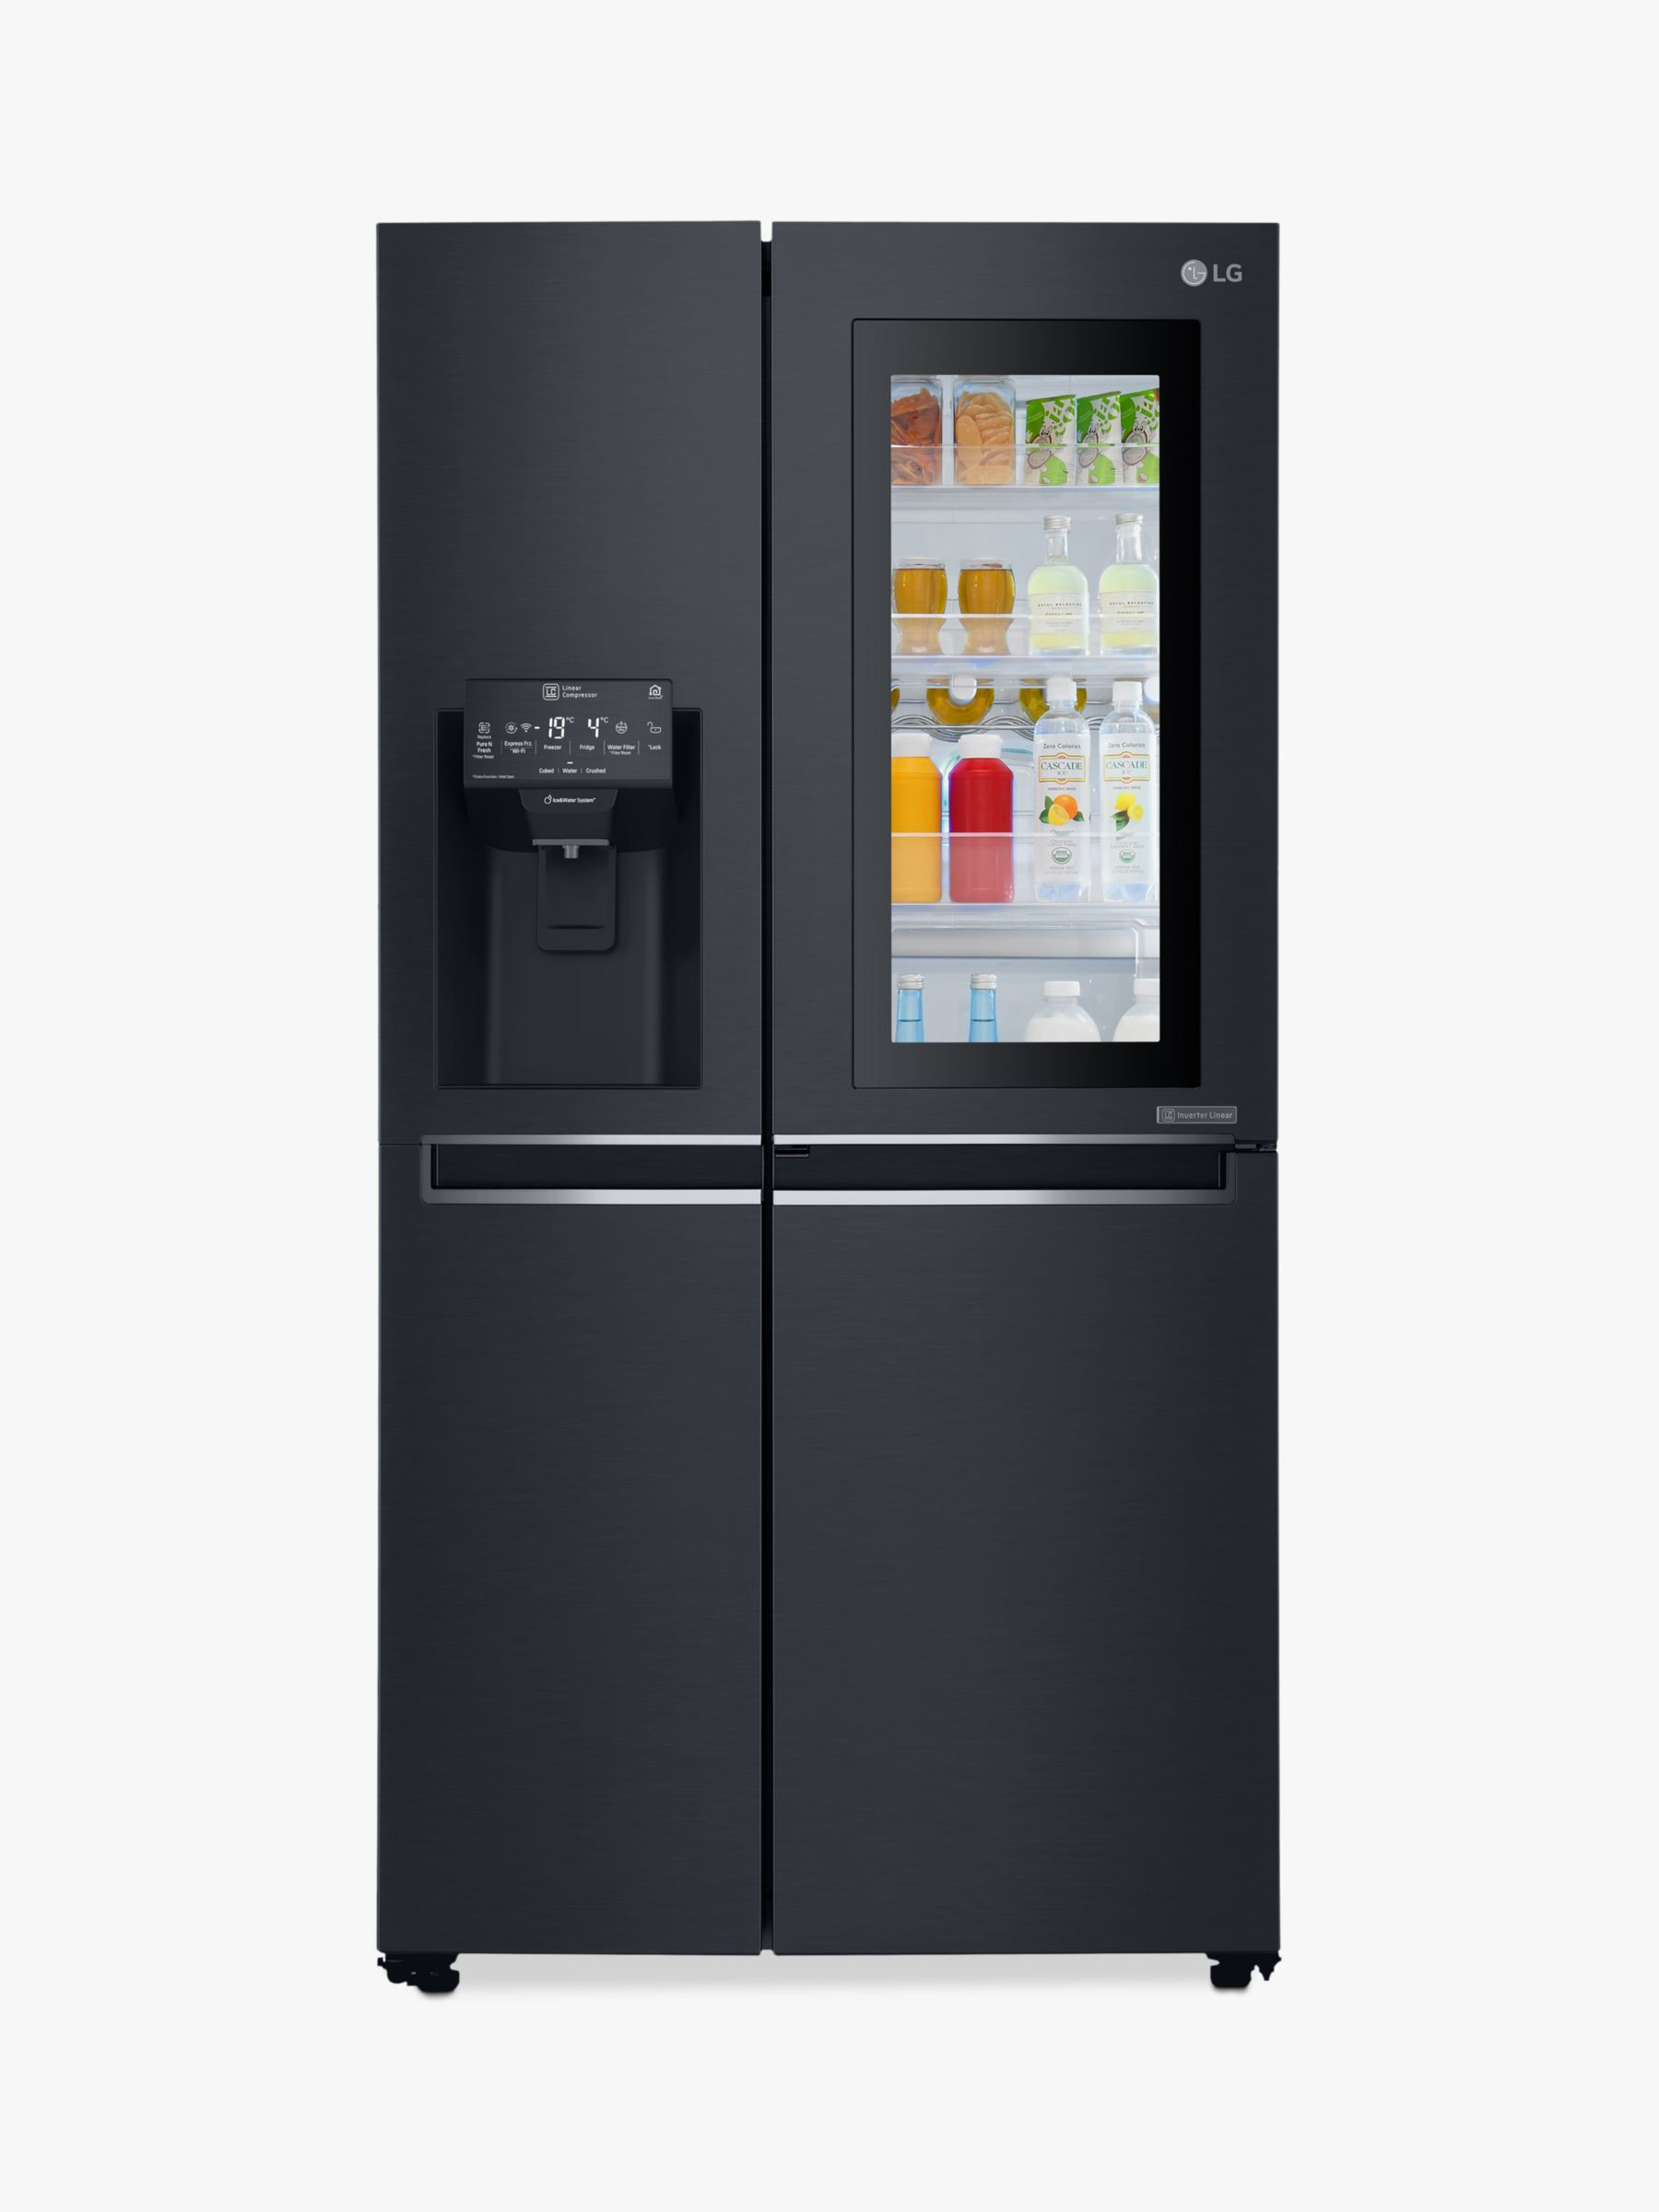 LG LG GSX960MCVZ InstaView Wi-Fi American Style Plumbed Water Filter Fridge Freezer, A++ Energy Rating, 91.2cm Wide, Matte Black